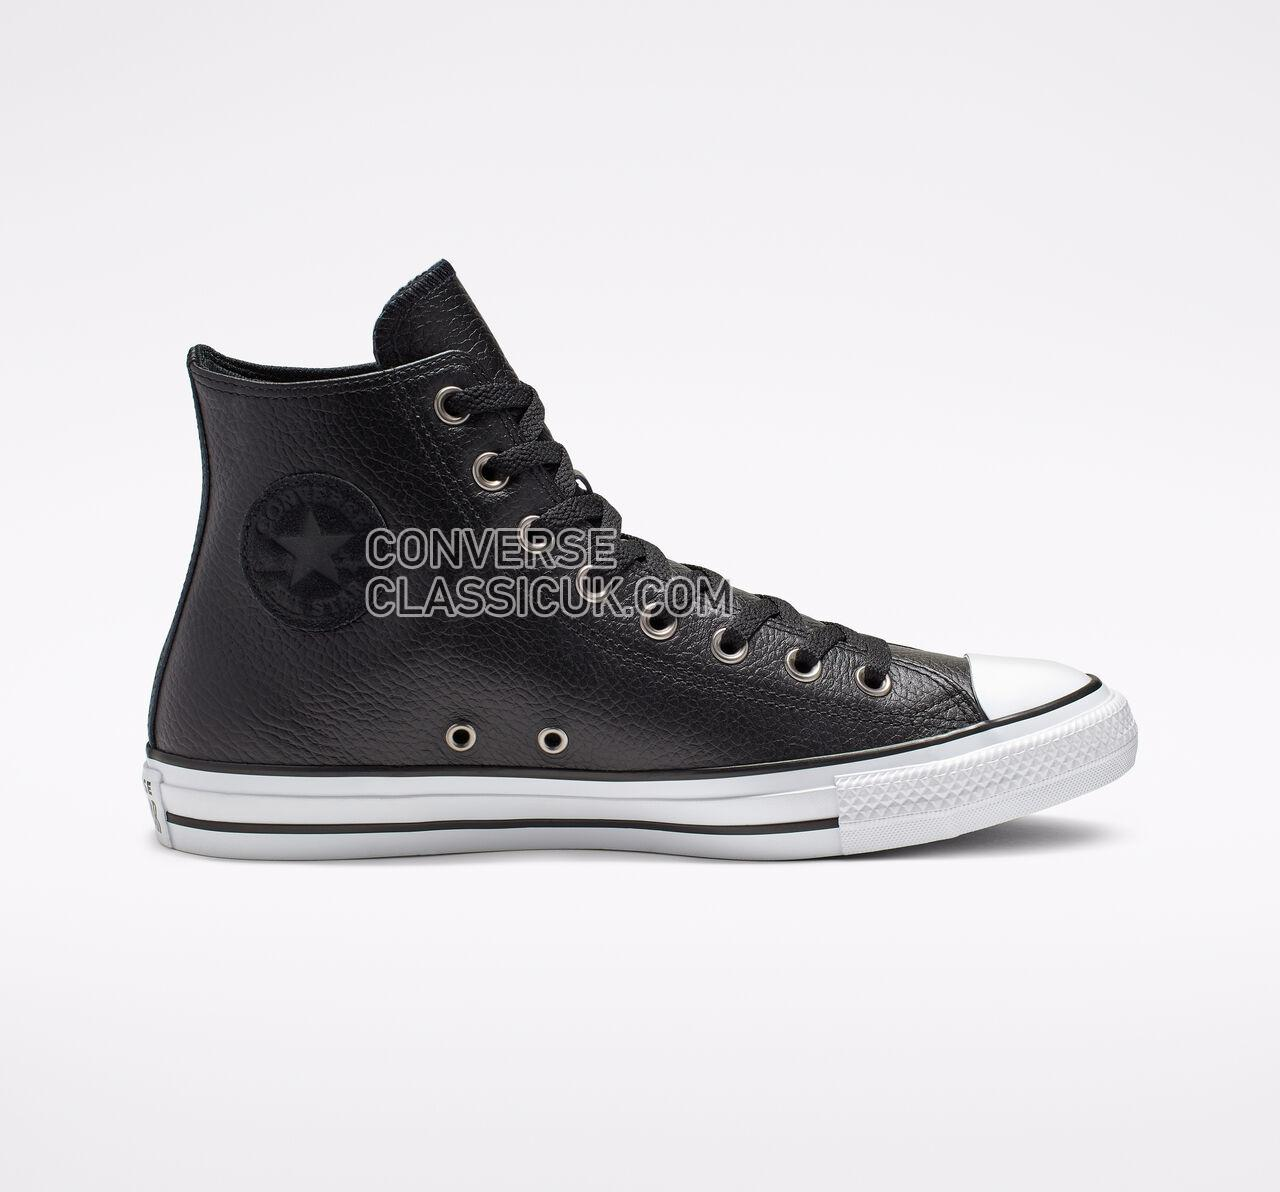 Converse Chuck Taylor All Star Leather High Top Mens Womens Unisex 165191C Black/White/Black Shoes